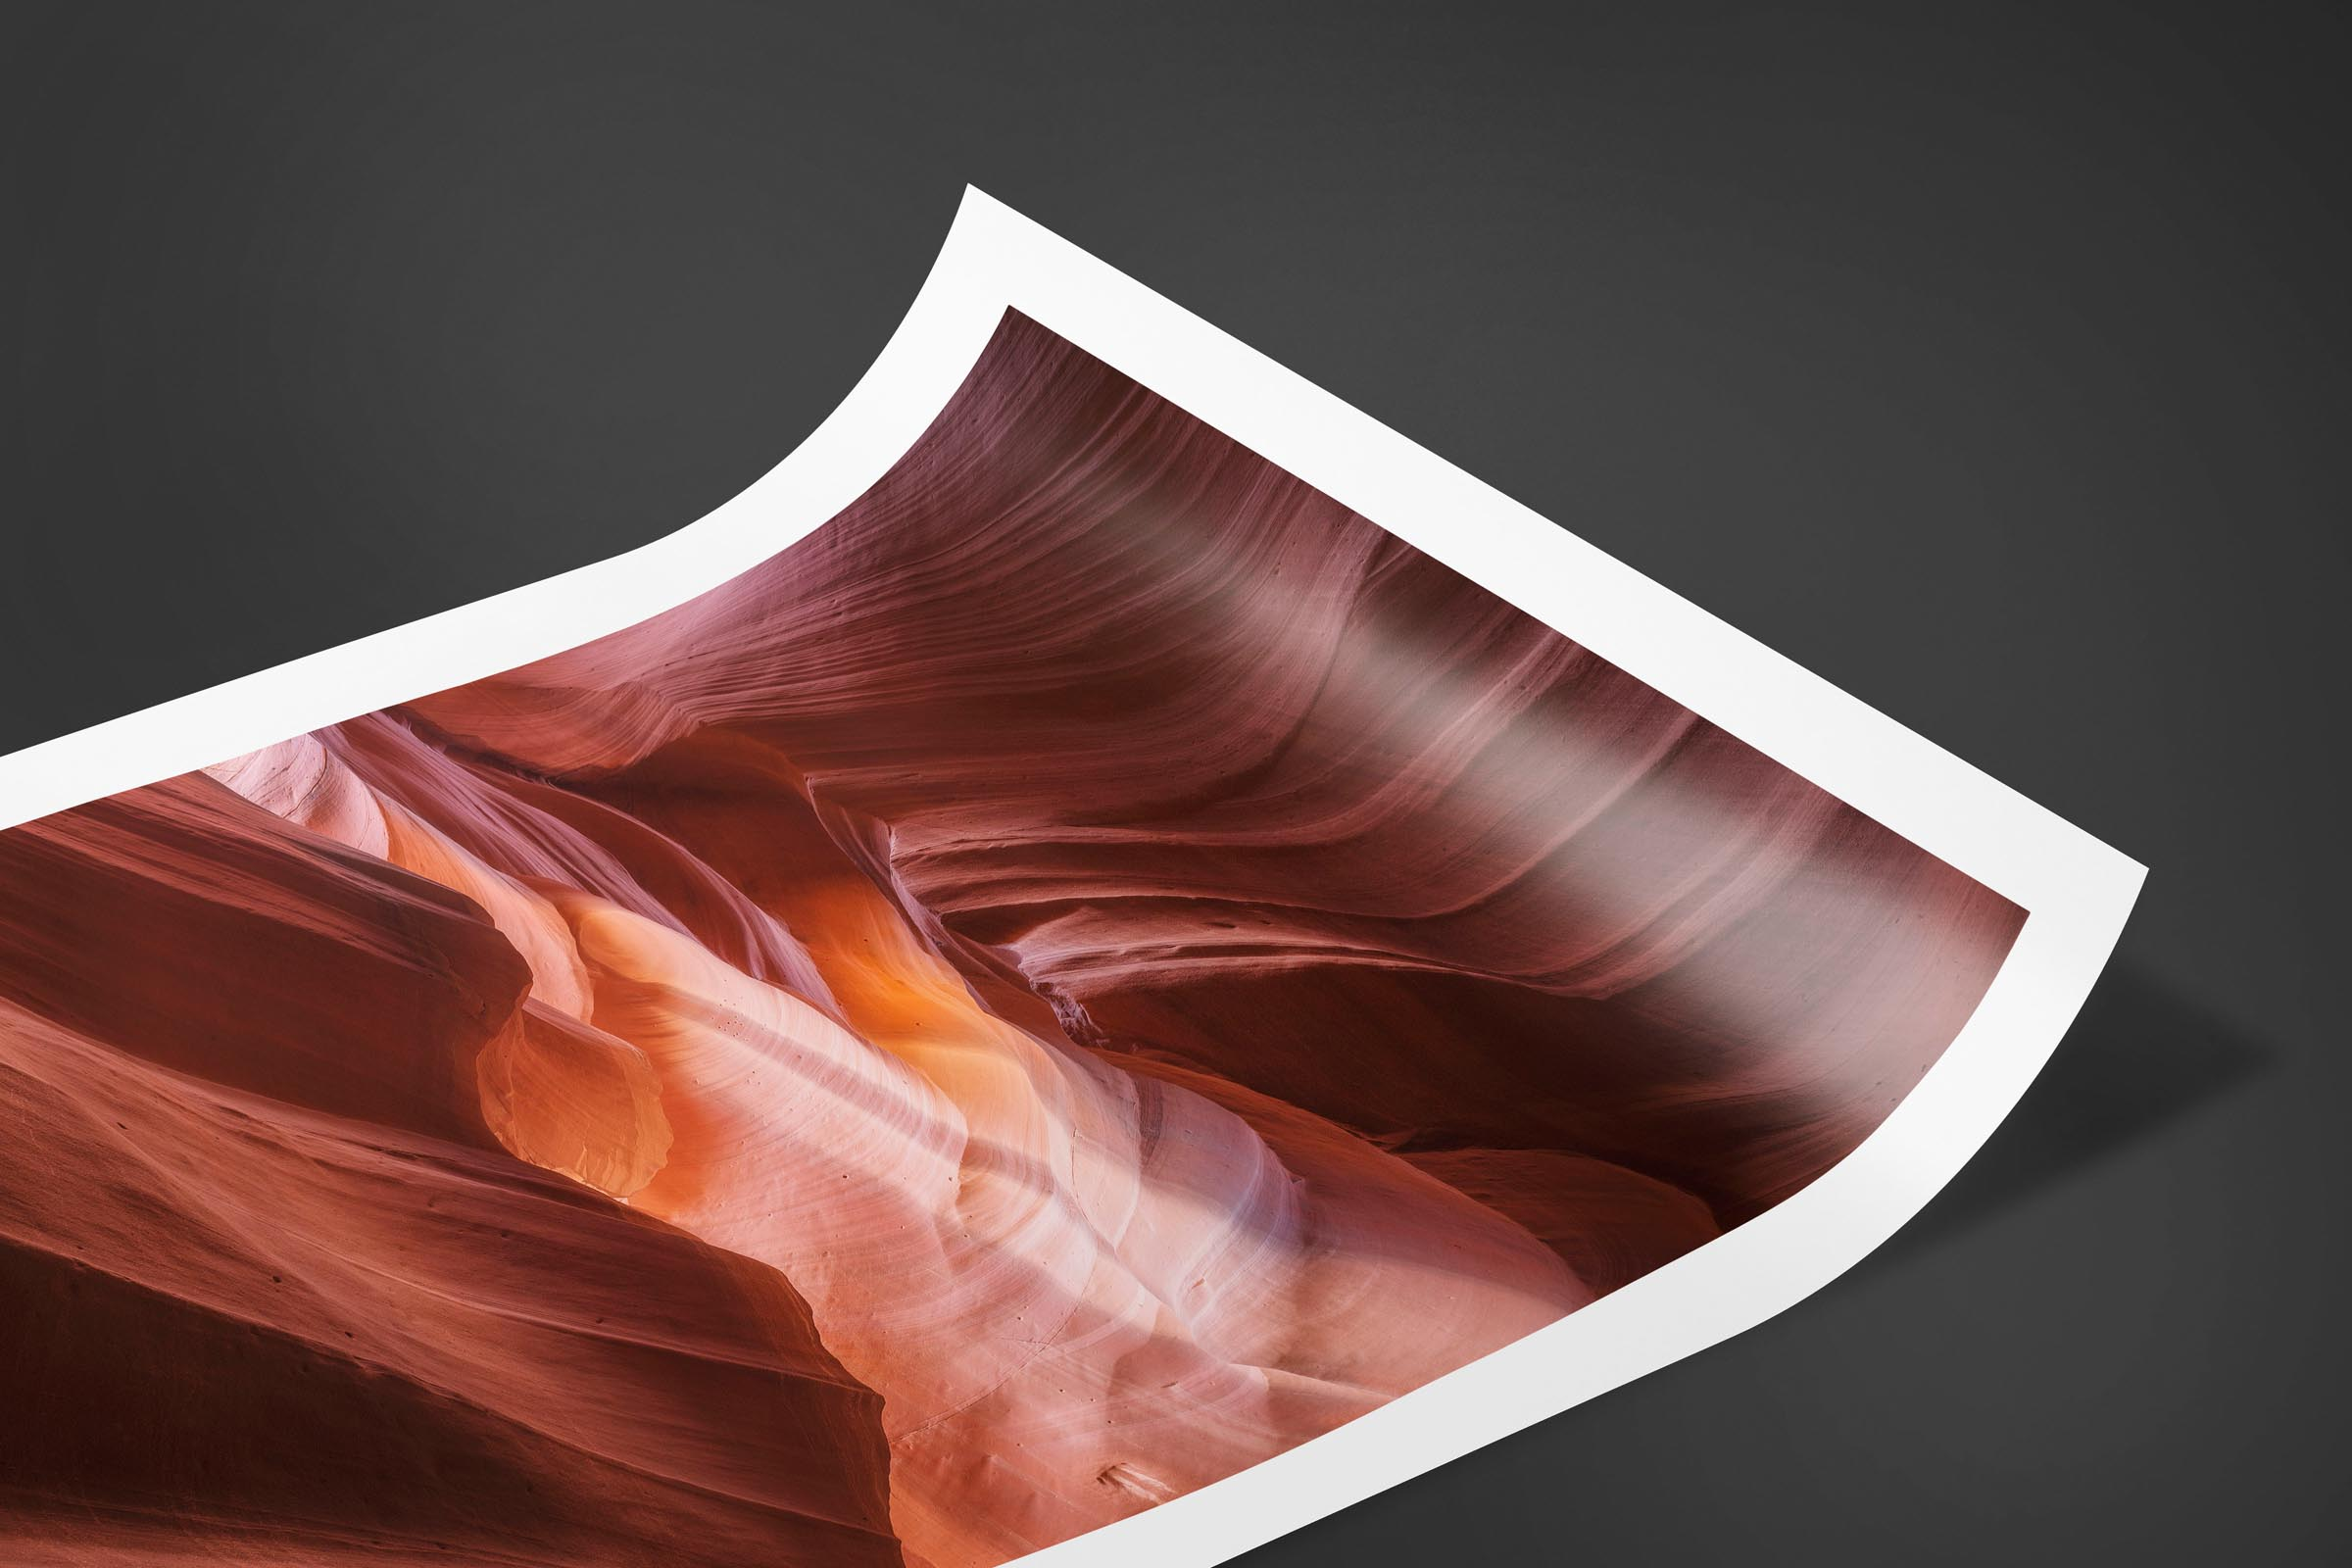 Fine art limited edition print of Antelope Canyon in Page, Arizona by Brent Goldman Photography